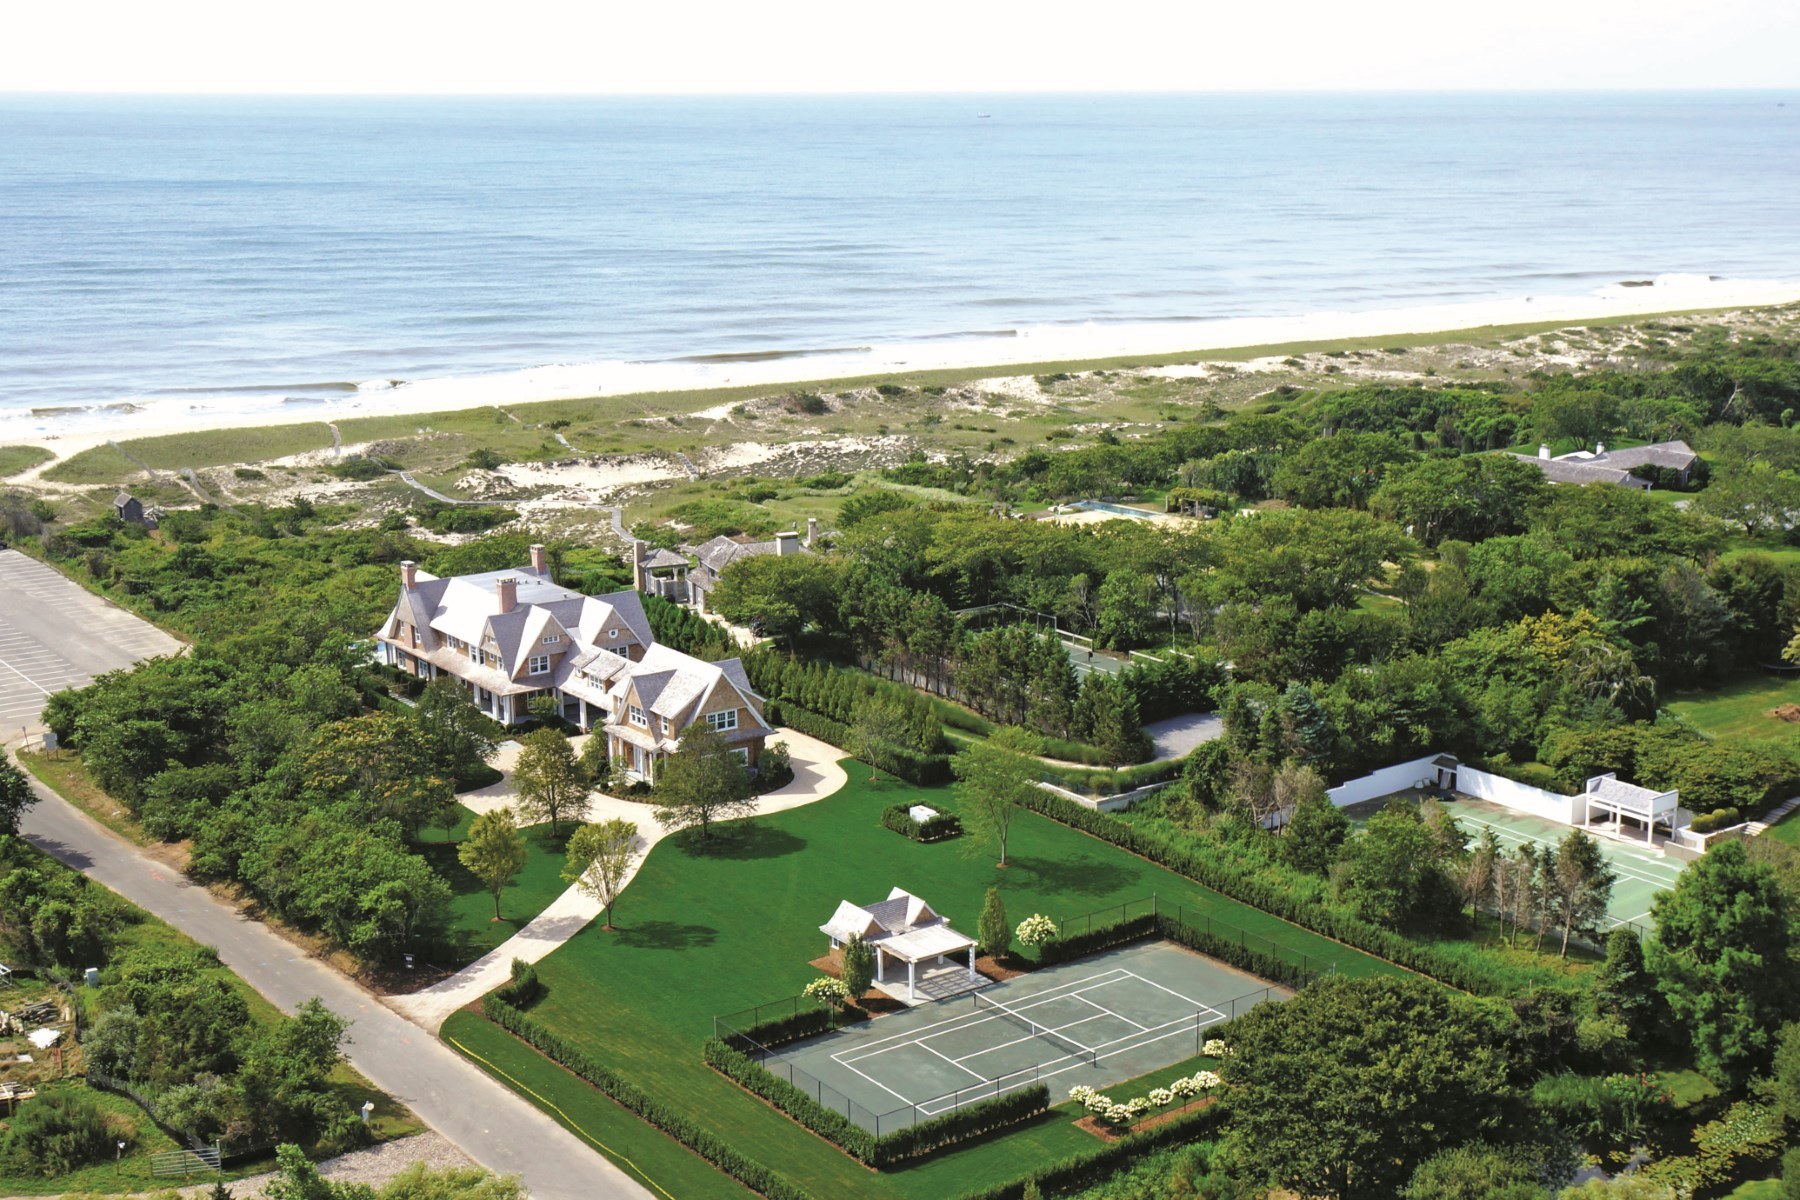 Частный односемейный дом для того Аренда на East Hampton Oceanfront, Pool and Tennis 38 Two Mile Hollow Road East Hampton Village, East Hampton, Нью-Йорк 11937 Соединенные Штаты